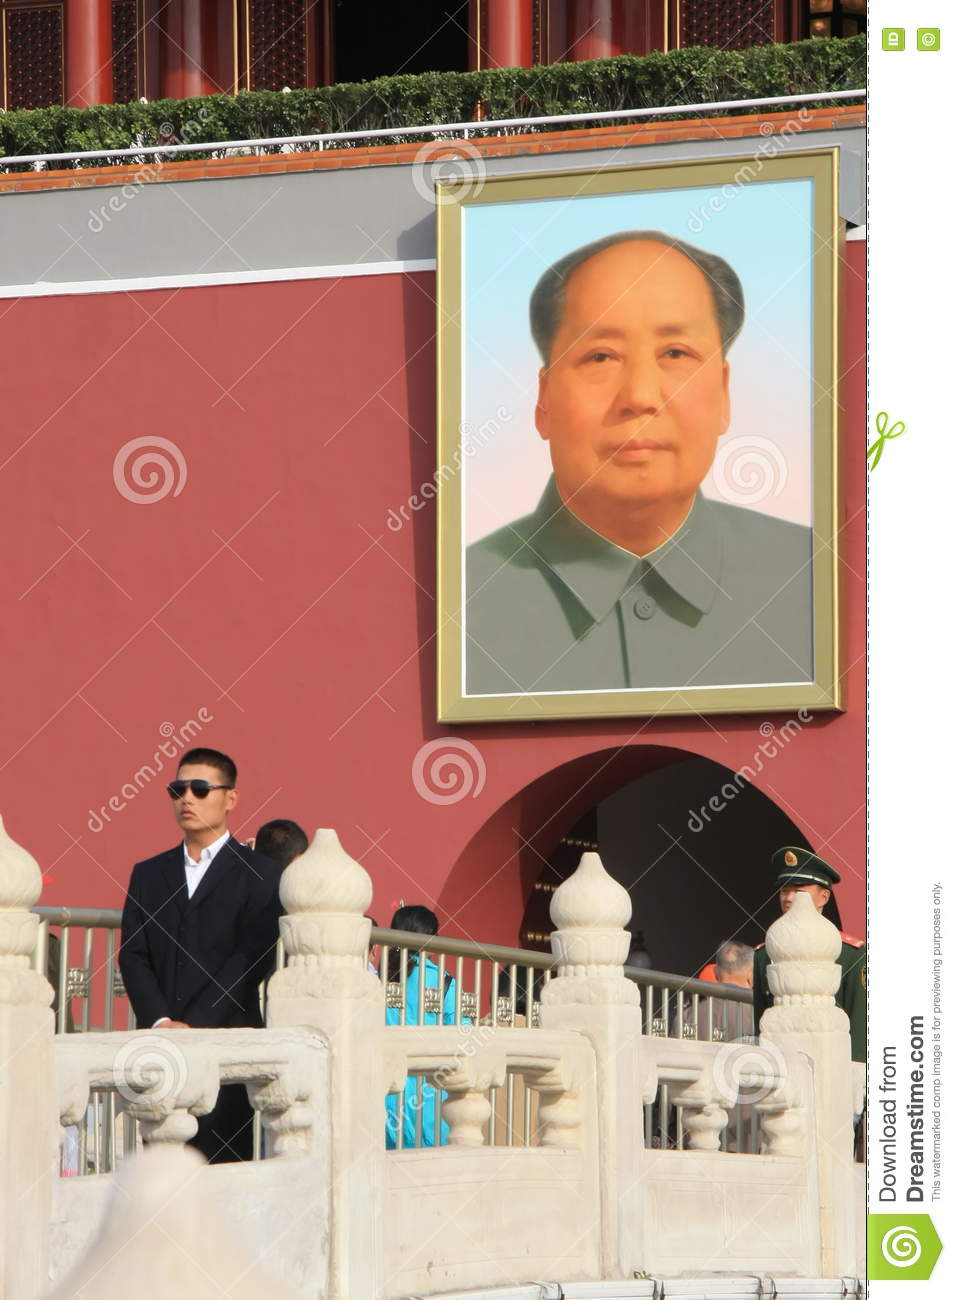 Chinese security officer on the background of a portrait of Mao Zedong